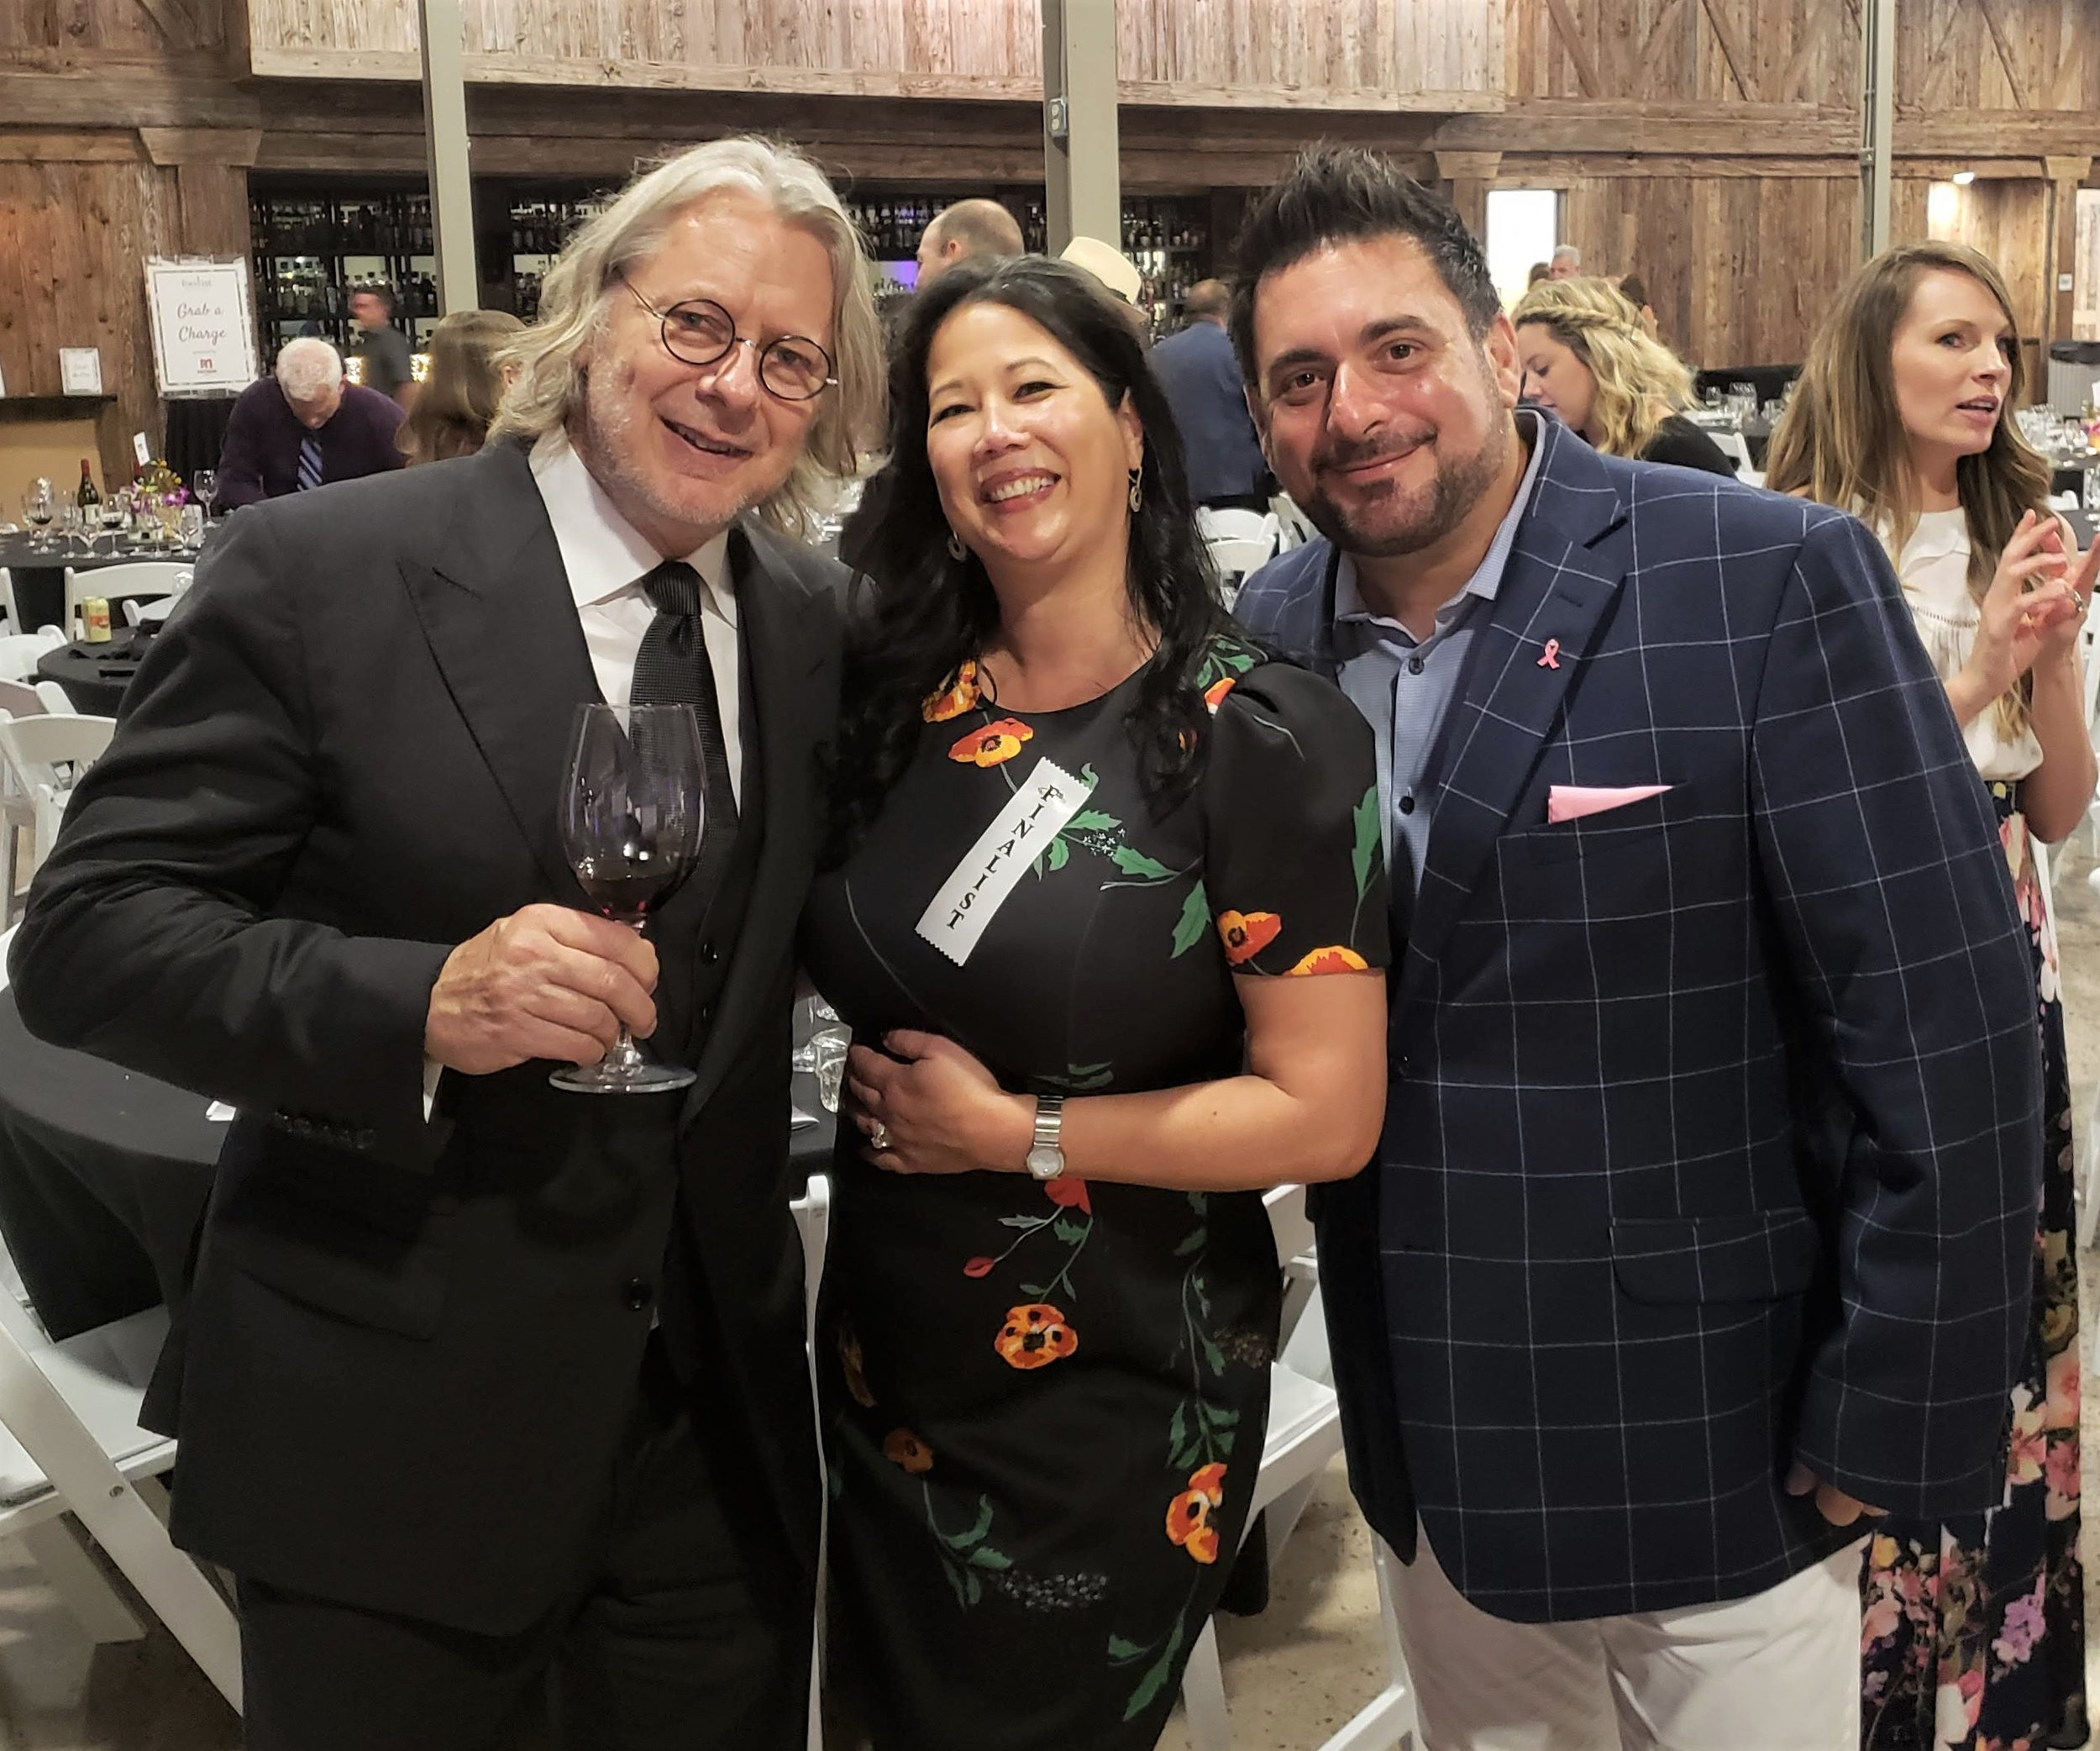 2018 Foodist Awards: Winner of Food Pioneer - Christopher Gross of Christopher's and Geordie's at Wrigley Mansion; Winner of Best of the Best Food Writer - Christina Barrueta of Write On Rubee; Finalist for Signature Dish and Food Pioneer - Gio Osso of Virtu and Nico Heirloom Kitchen